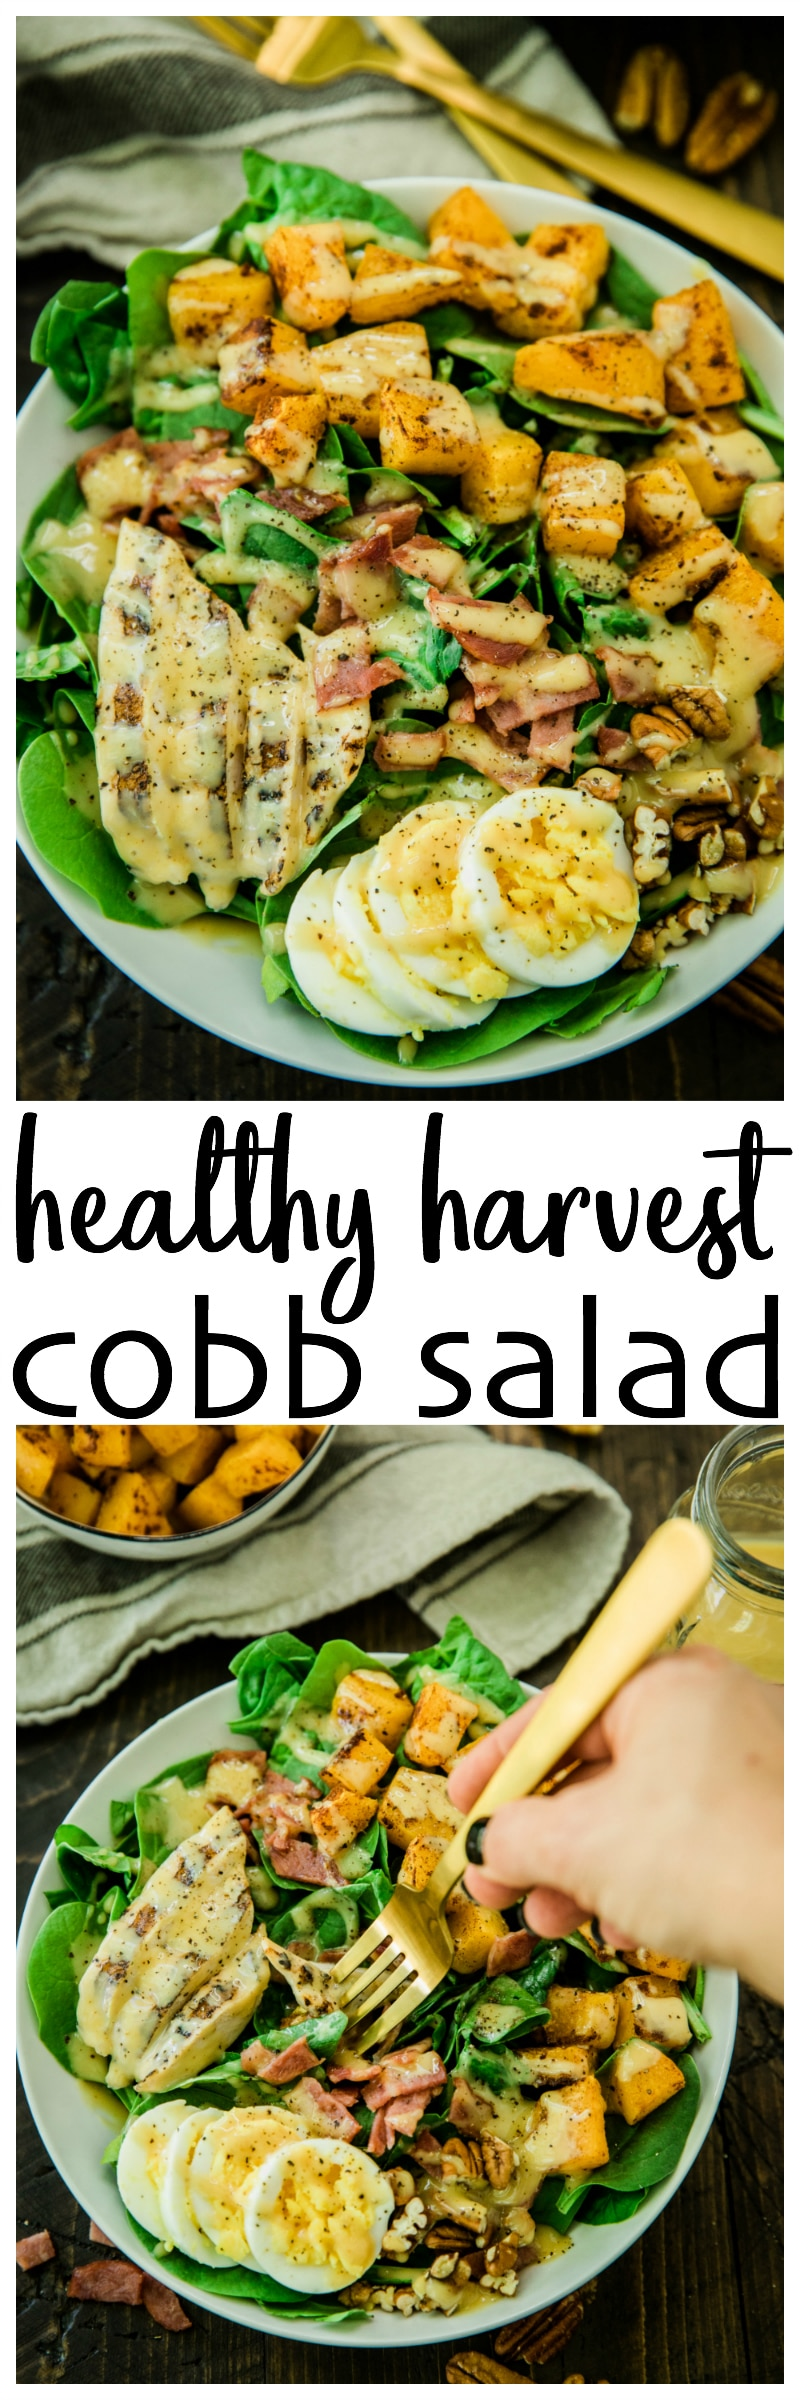 This hearty fall/winter Healthy Harvest Cobb Salad features roasted butternut squash and crunchy pecans that adds seasonal freshness to the traditional Cobb salad ingredients and the delicious honey mustard dressing really ties the whole thing together.